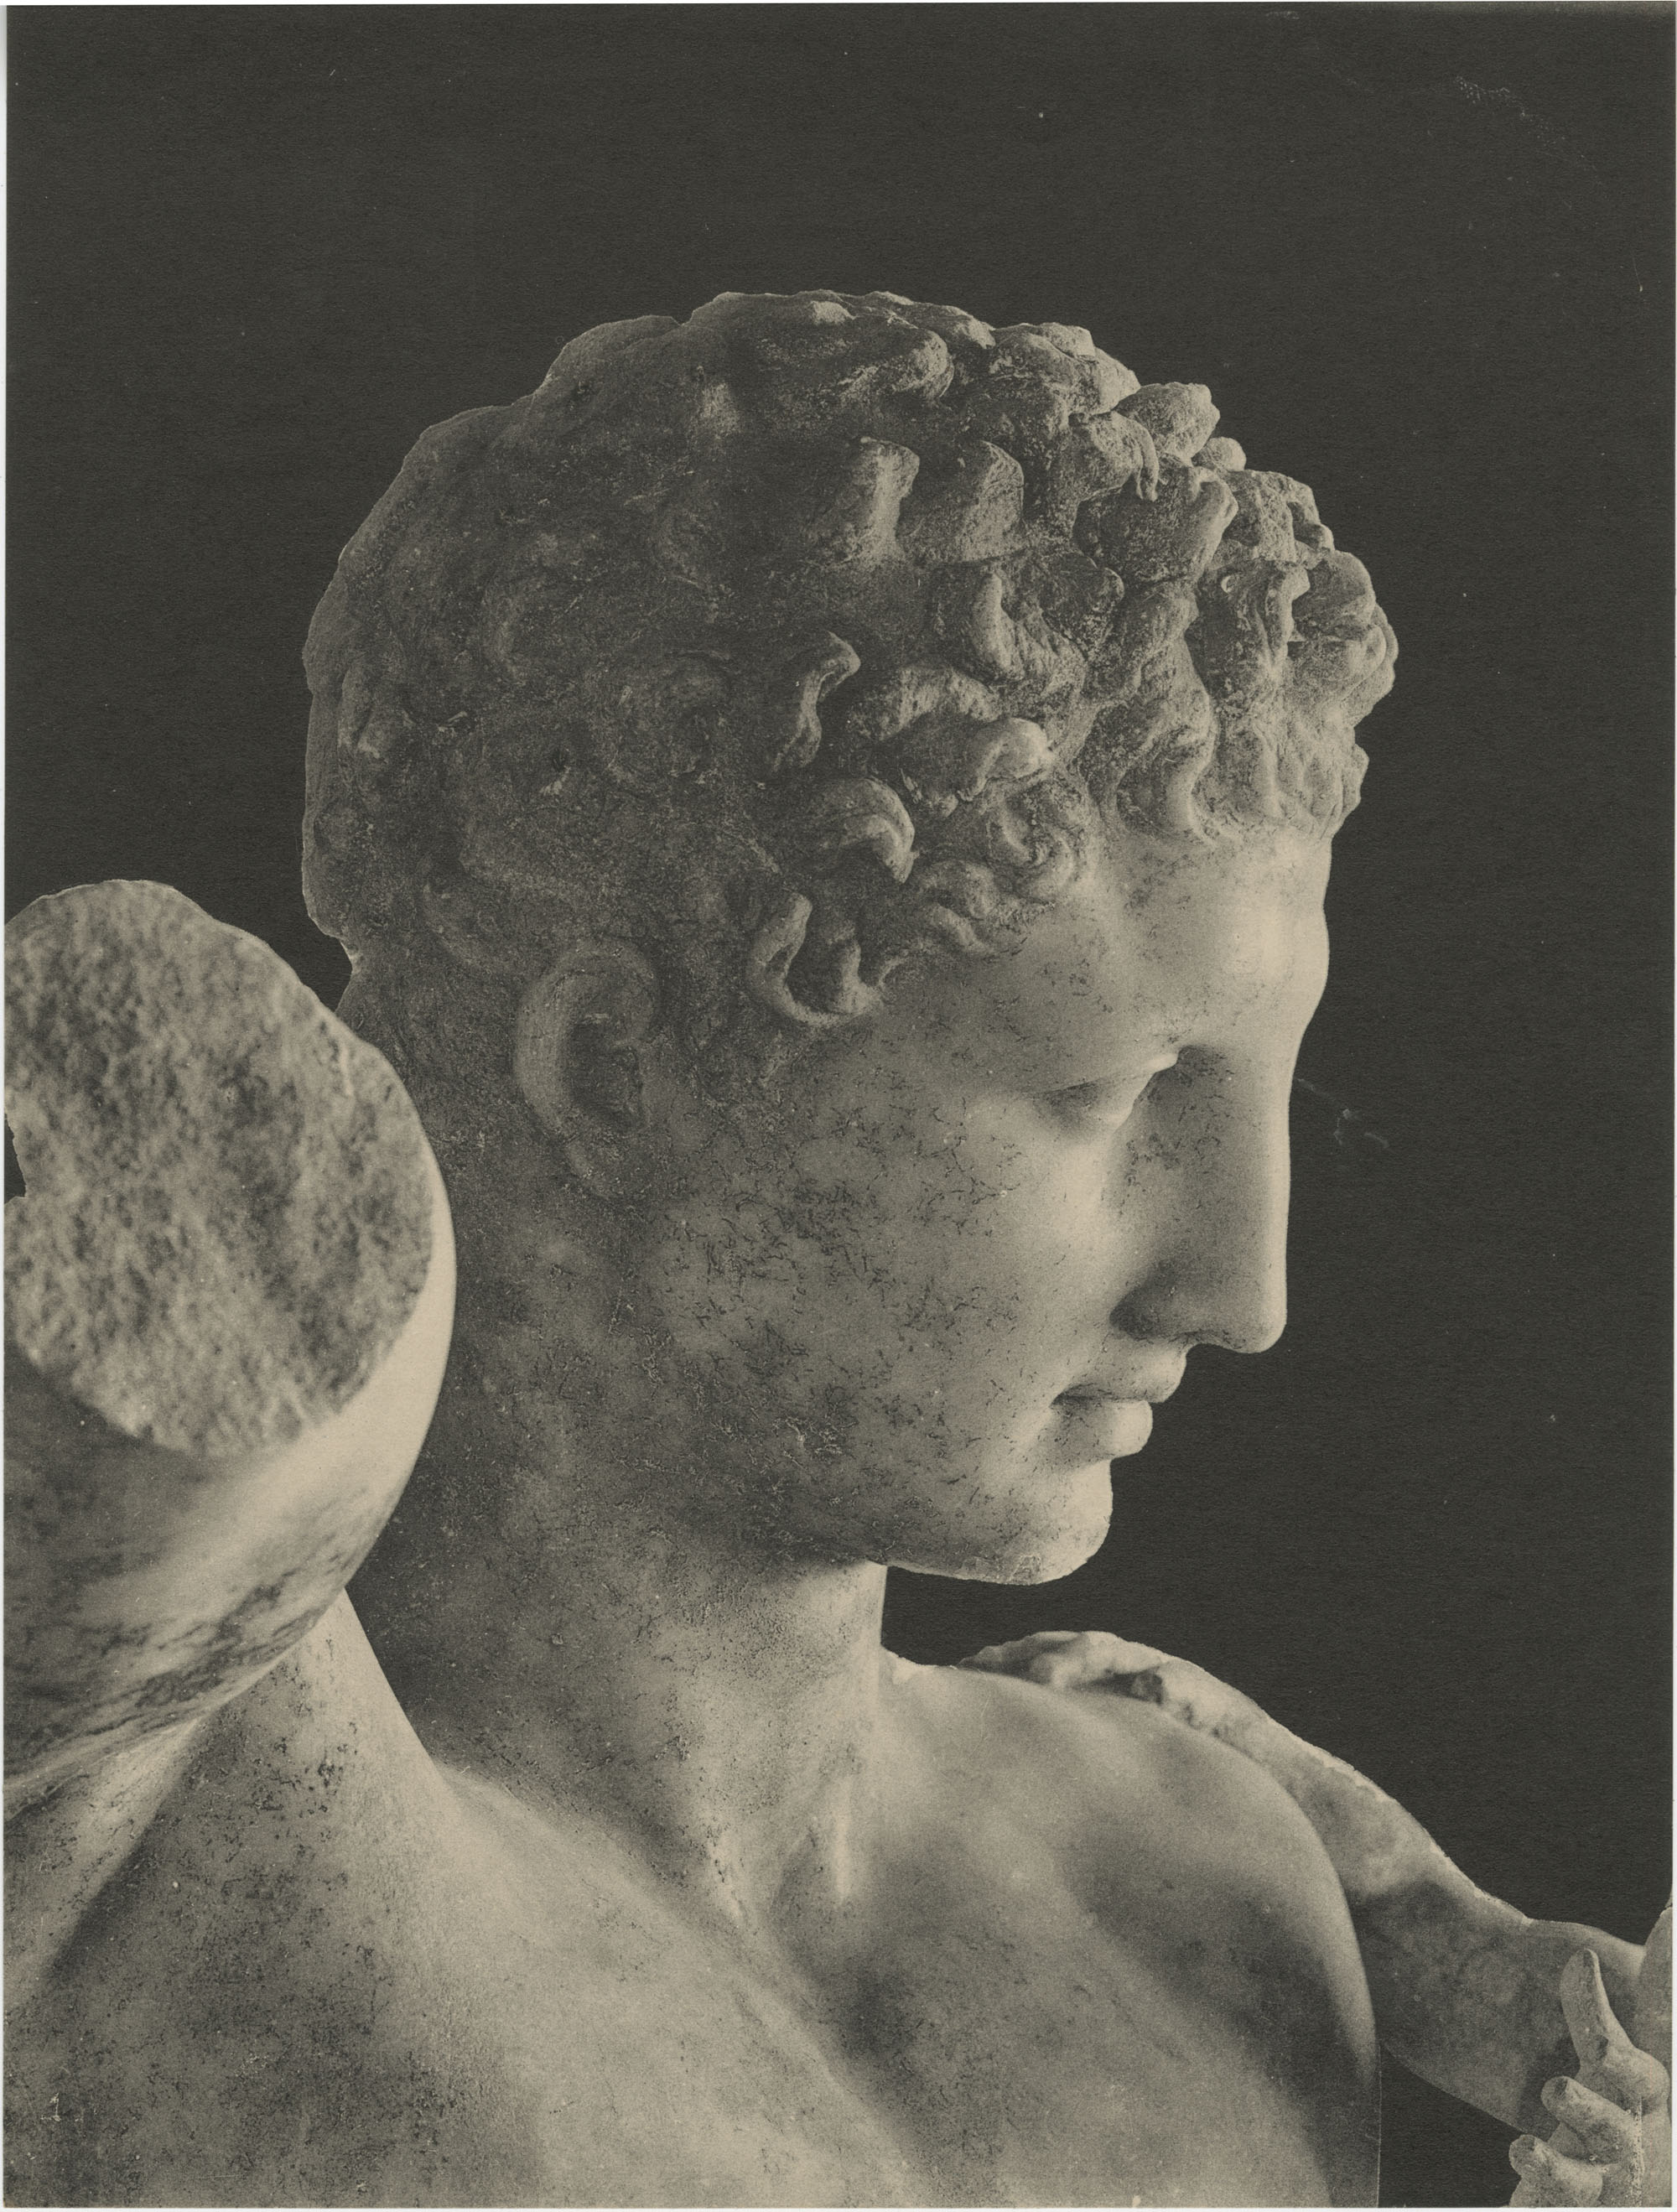 Sculpture from Athens, Greece, Photograph 23